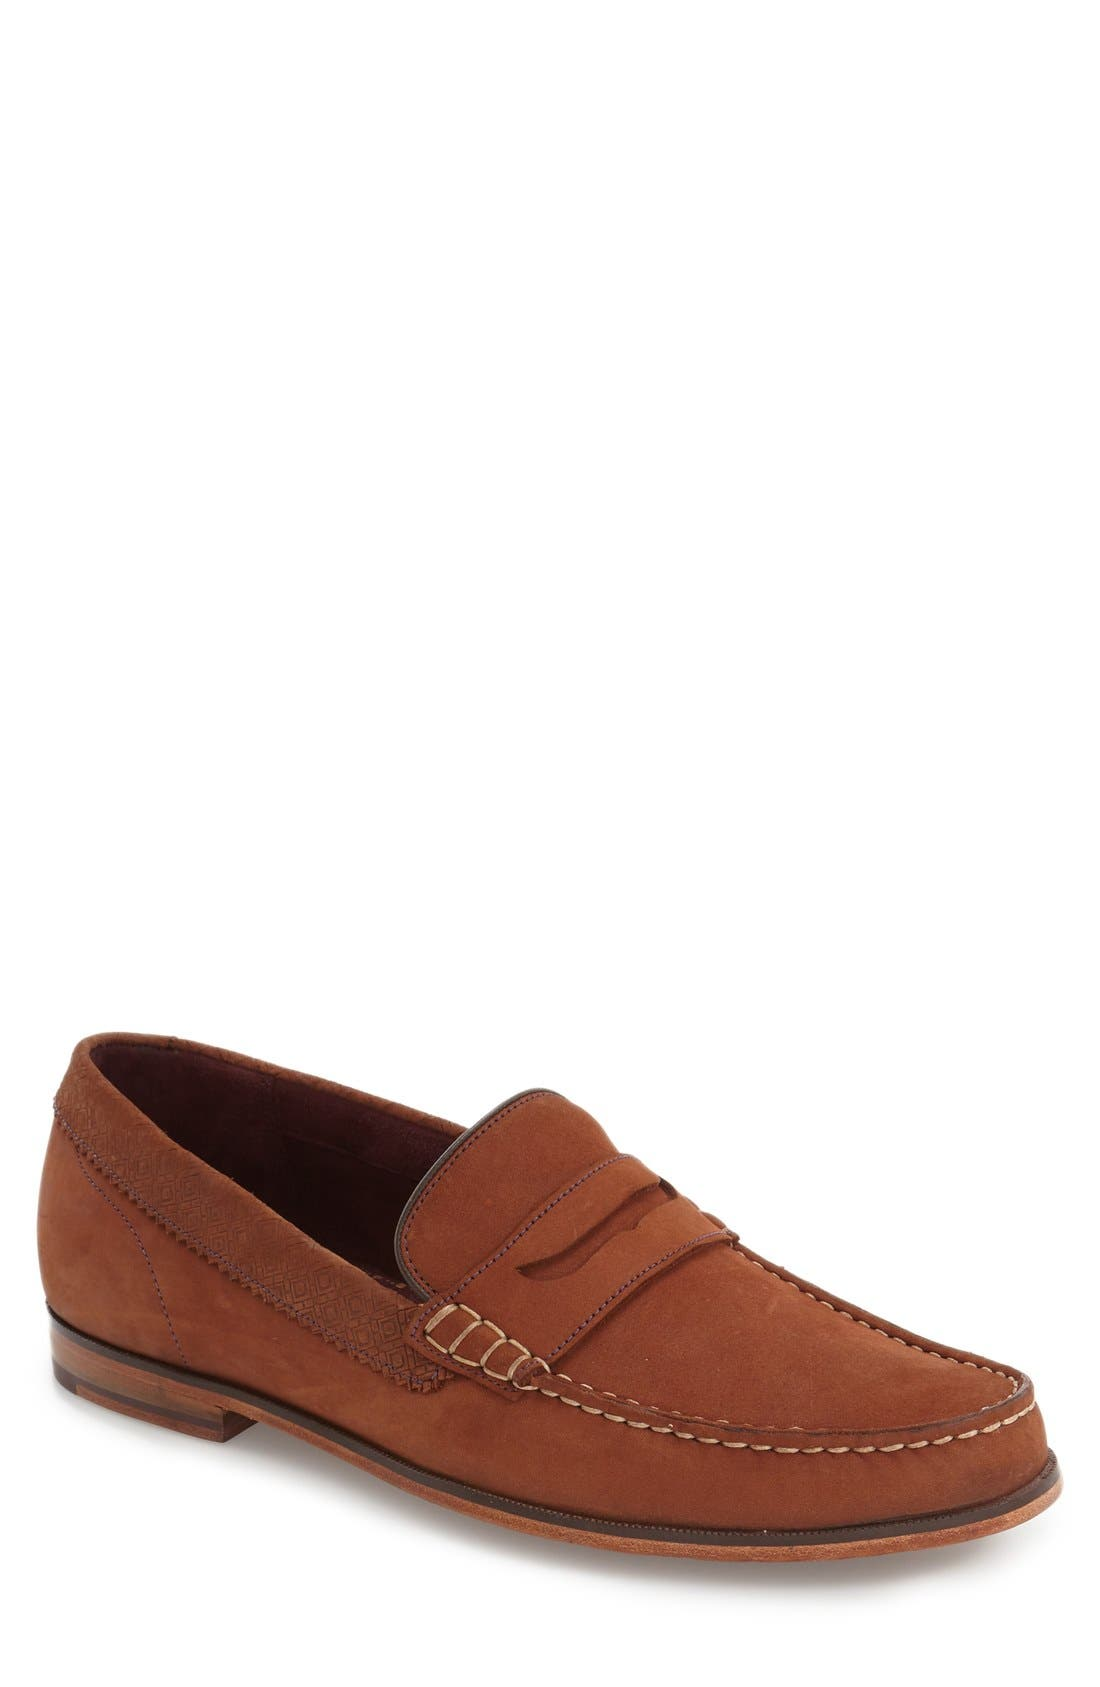 Main Image - Ted Baker London 'Miicke 2' Penny Loafer (Men)